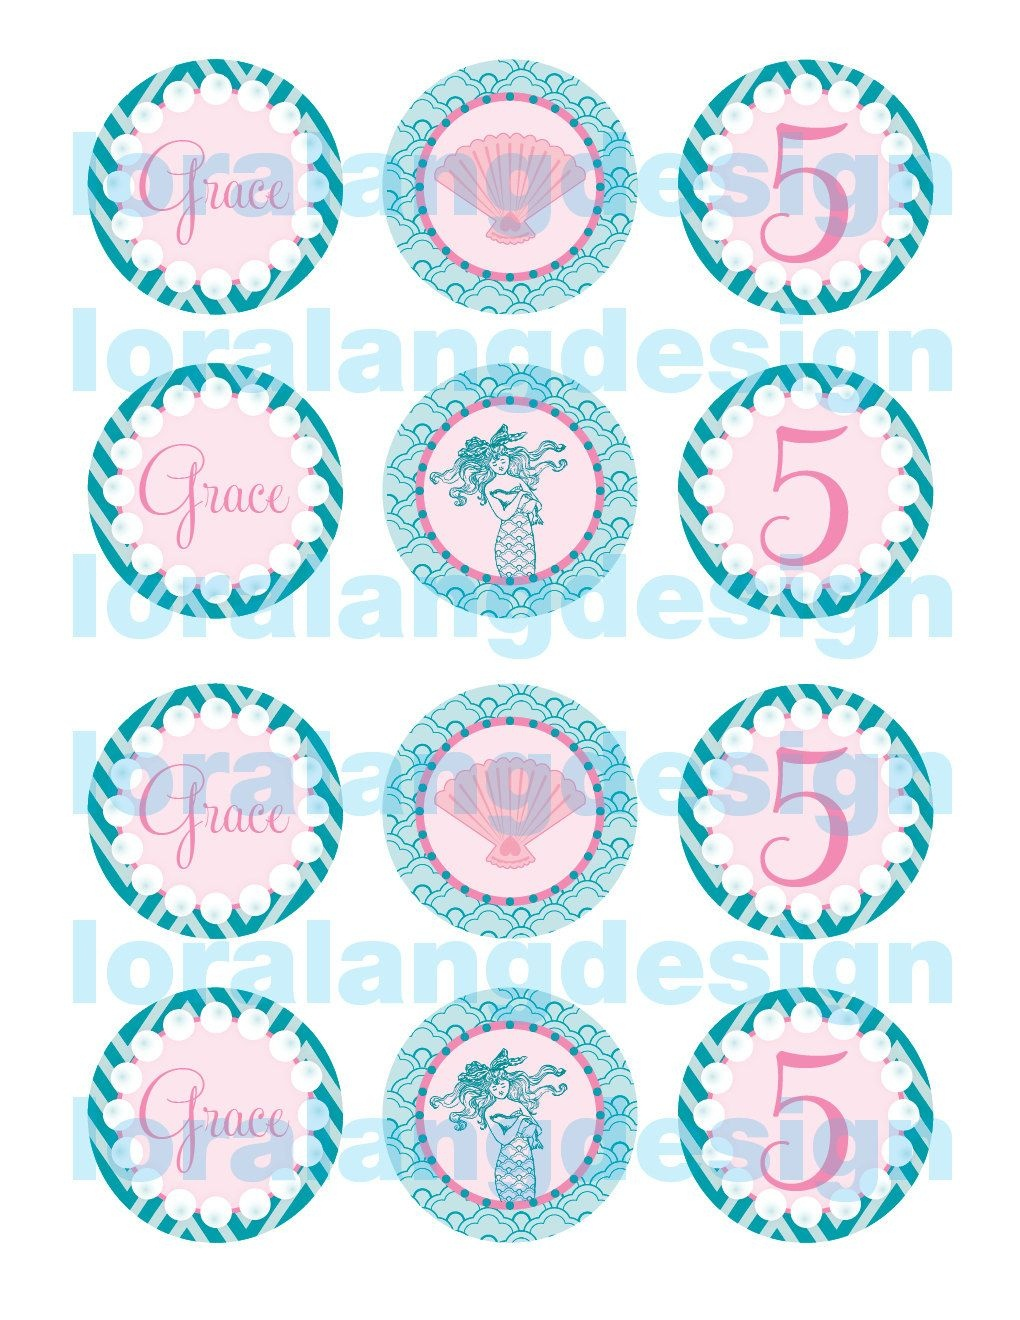 Printable Mermaid Cupcake Toppers Favors | Eg's 4Th Birthday - Free Printable Mermaid Cupcake Toppers